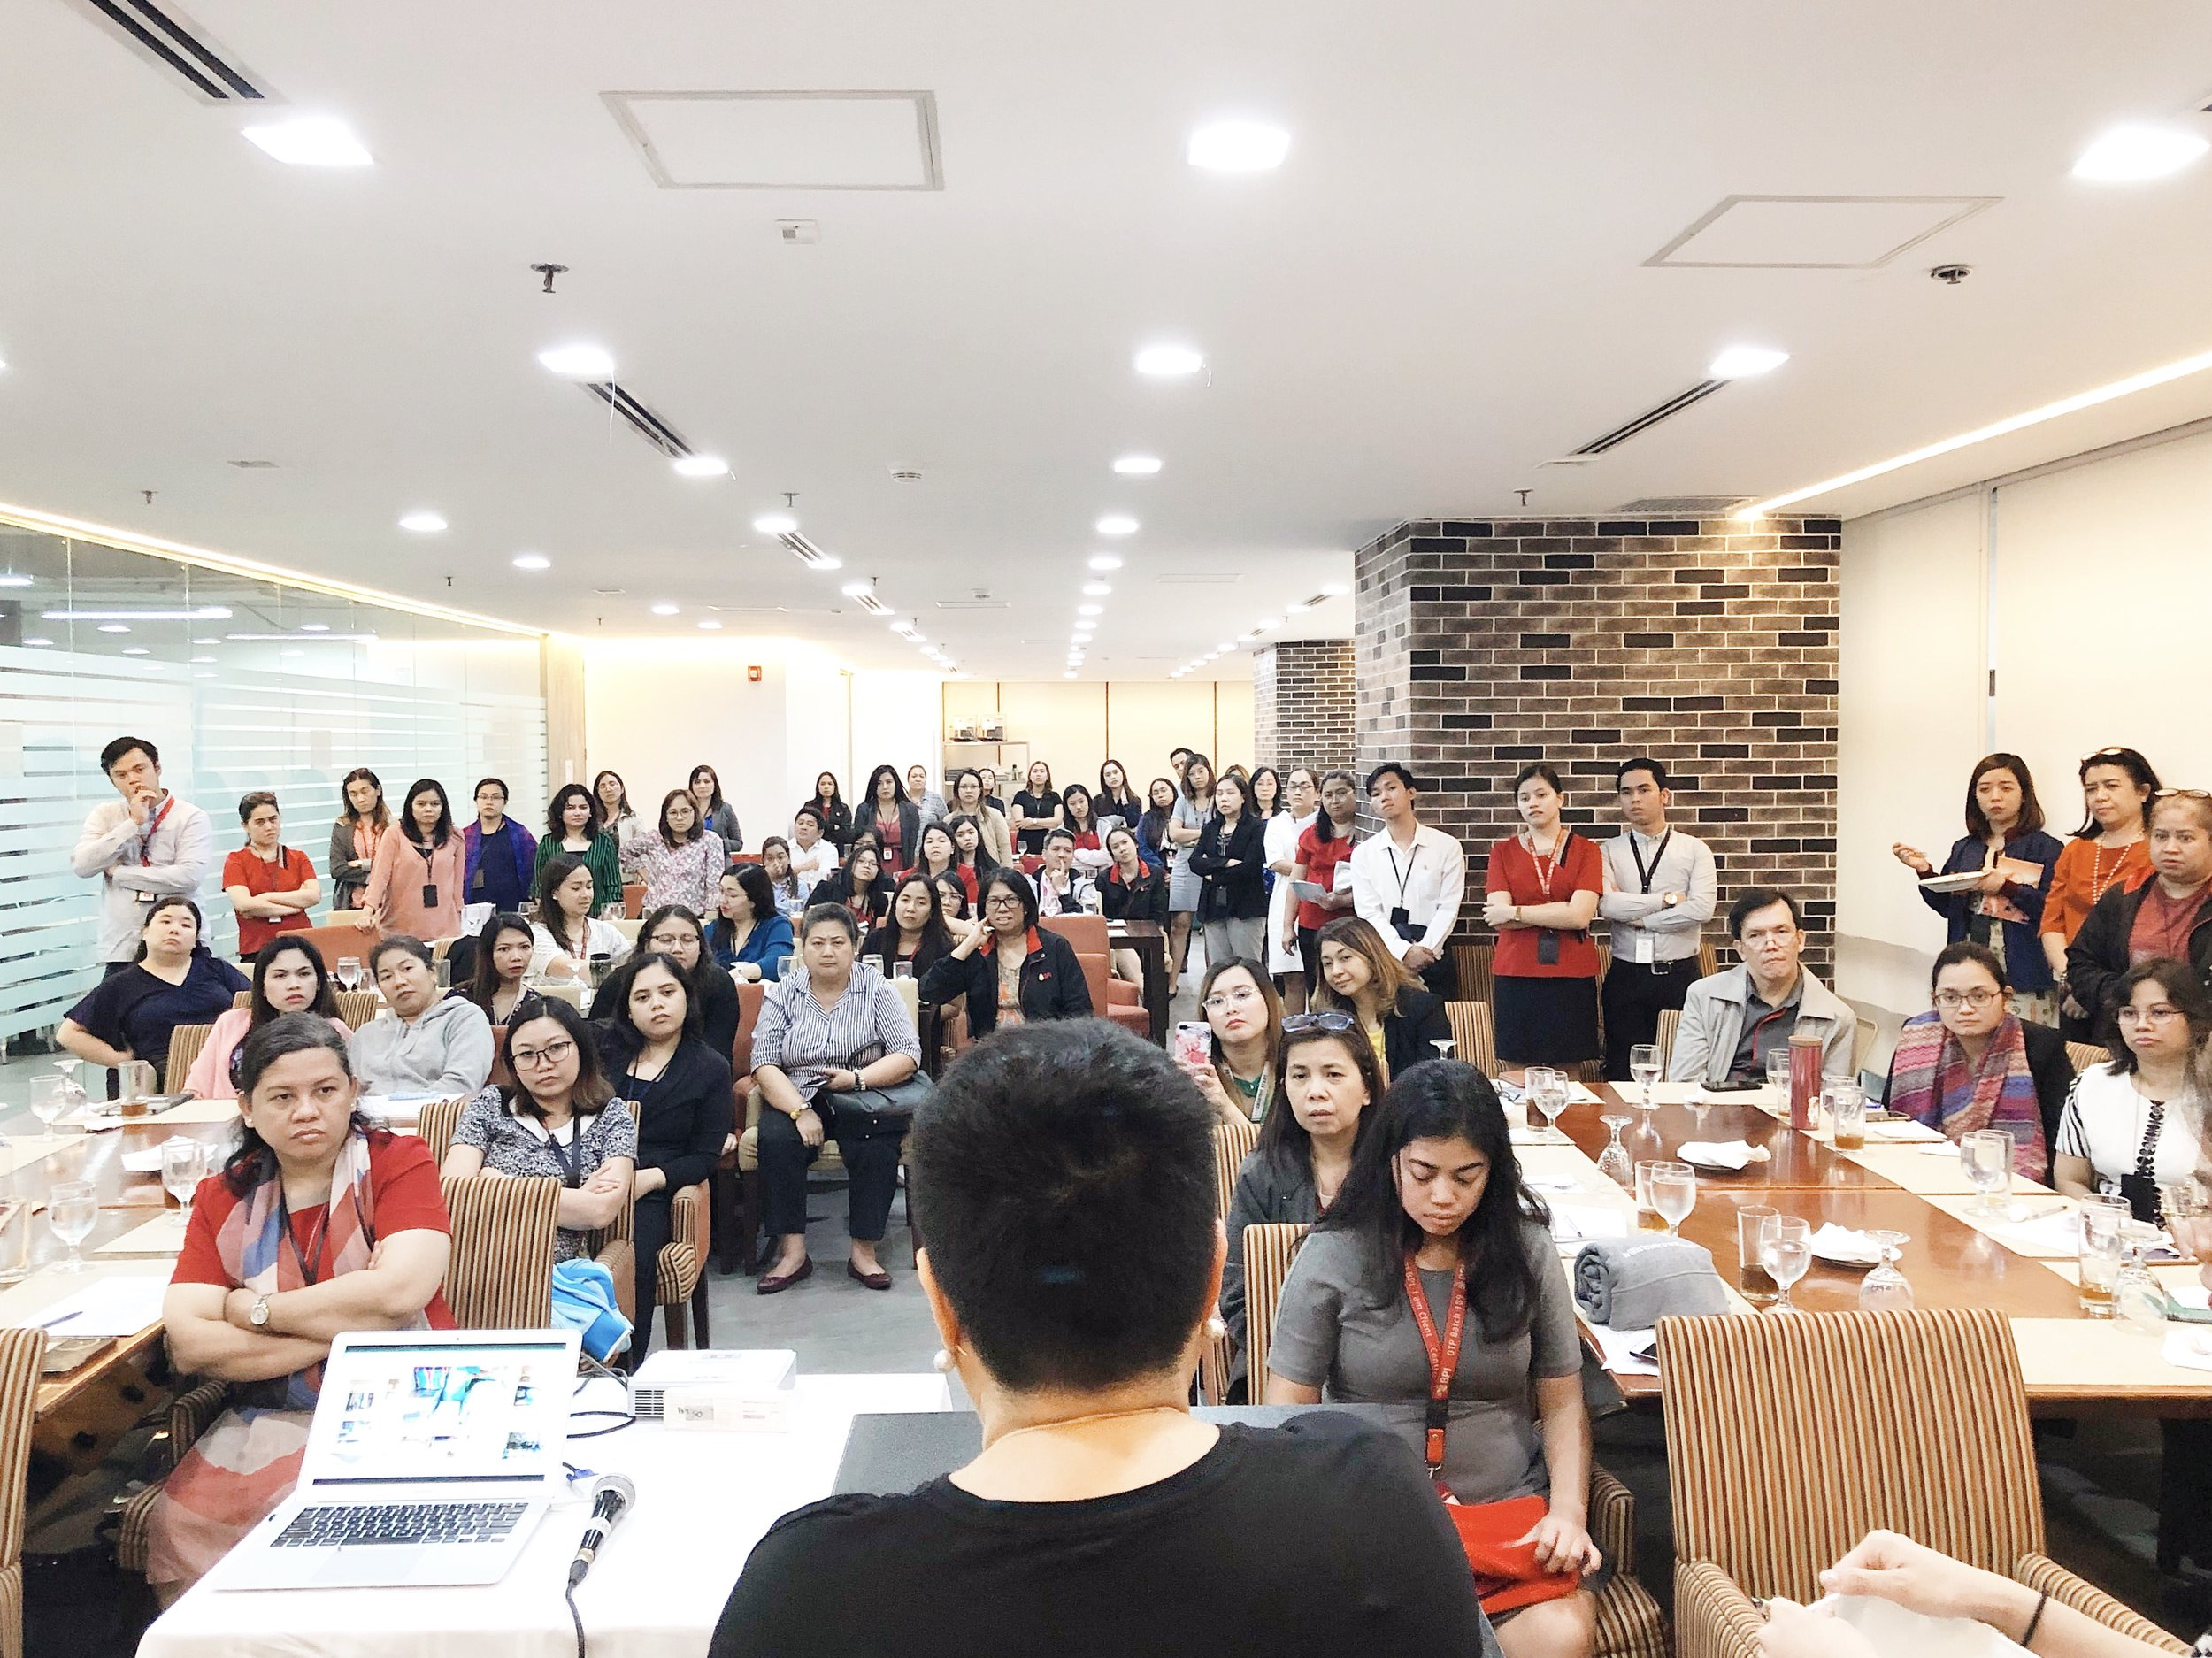 The attendees gathered around DMNL Founder Ayessa Bautista during live demonstration